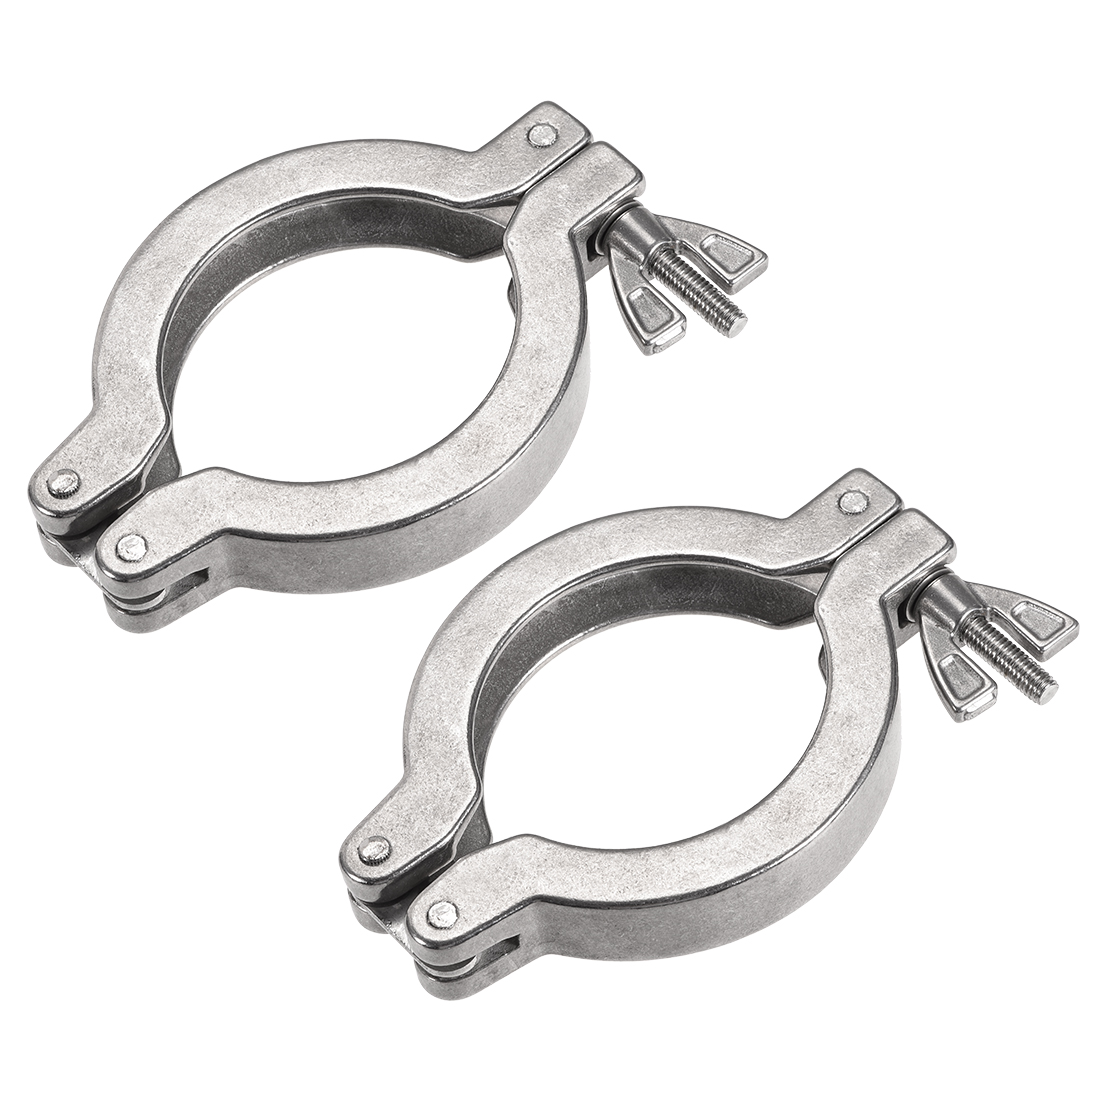 2Pcs Sanitary -Clamp 82mm x 57mm Single Pin Clamp Wing Nut for Ferrule TC